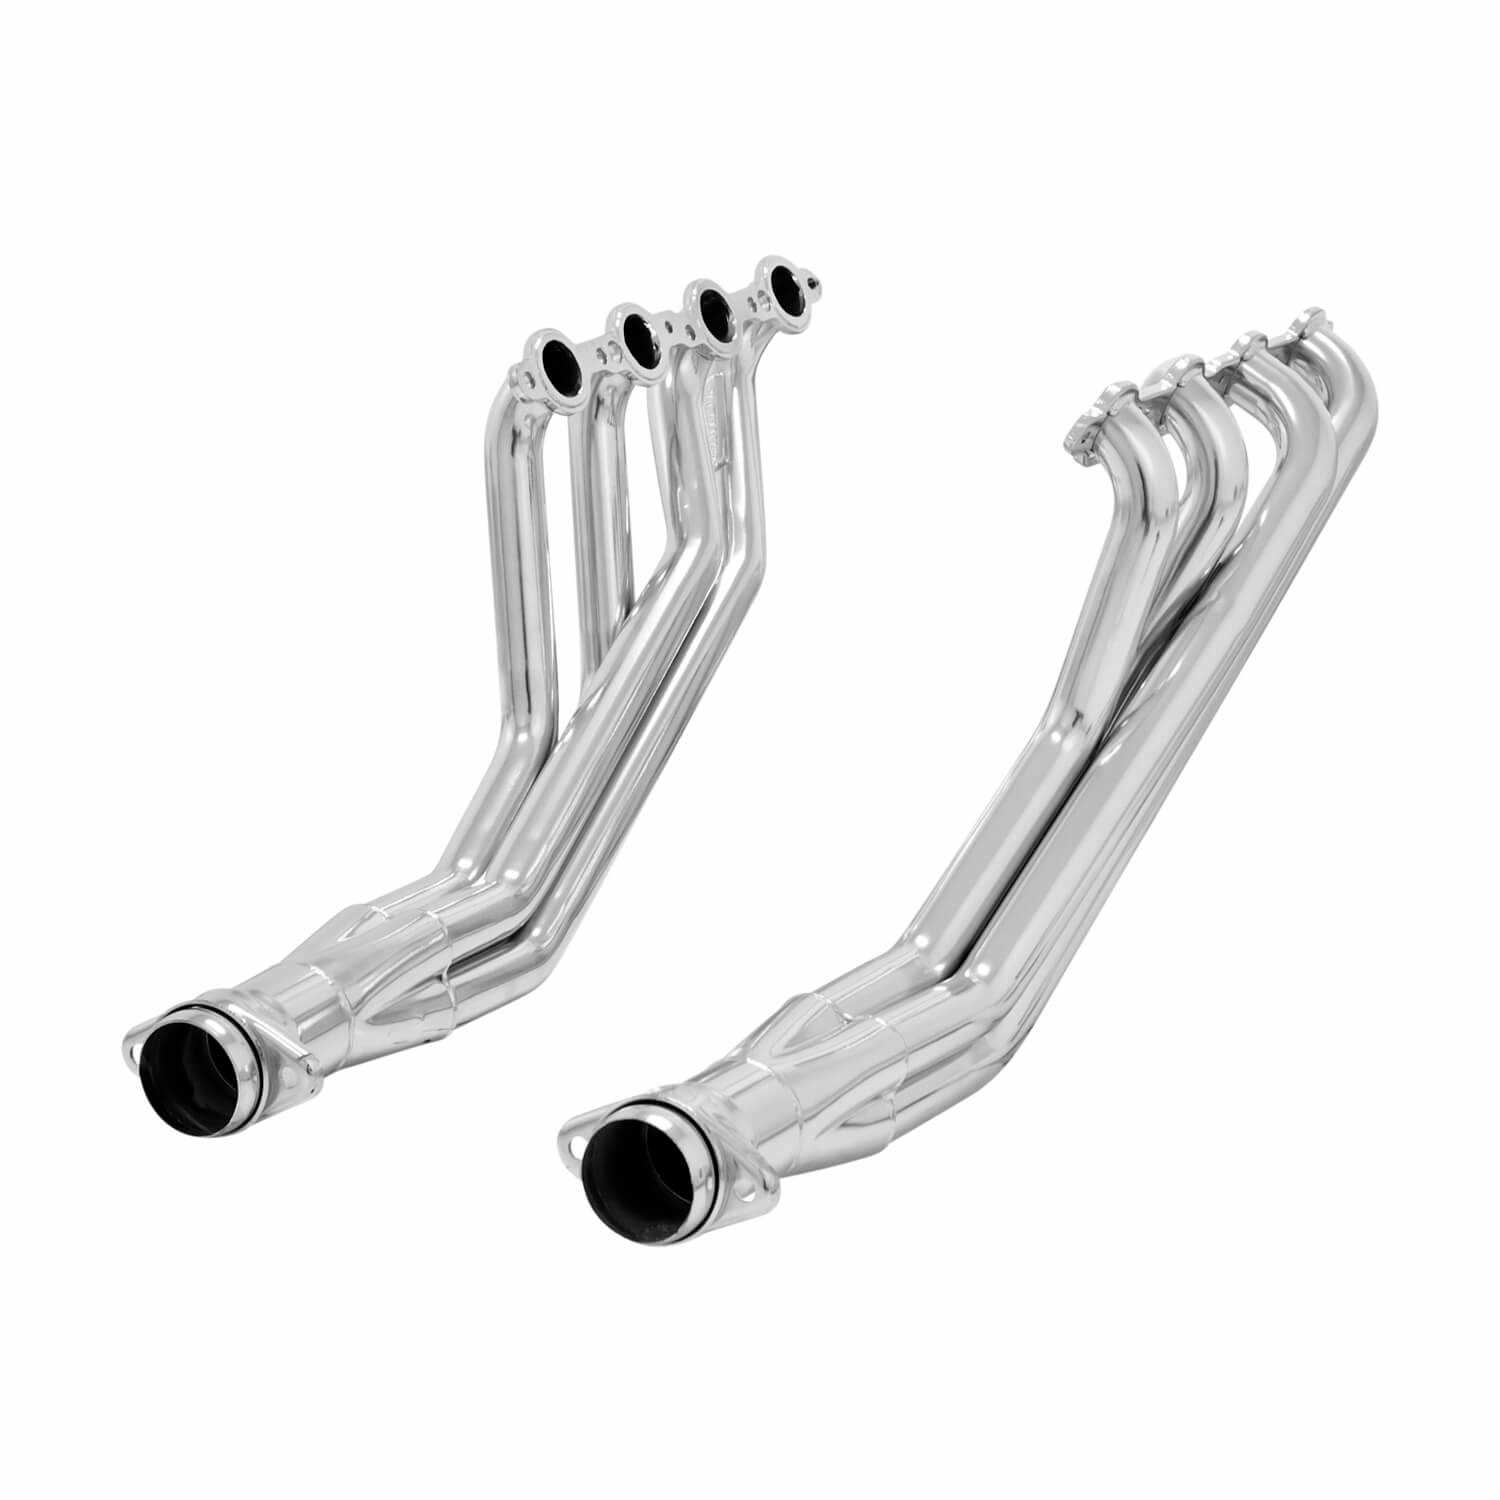 814116 Flowmaster Scavenger Series Elite Long Tube Header